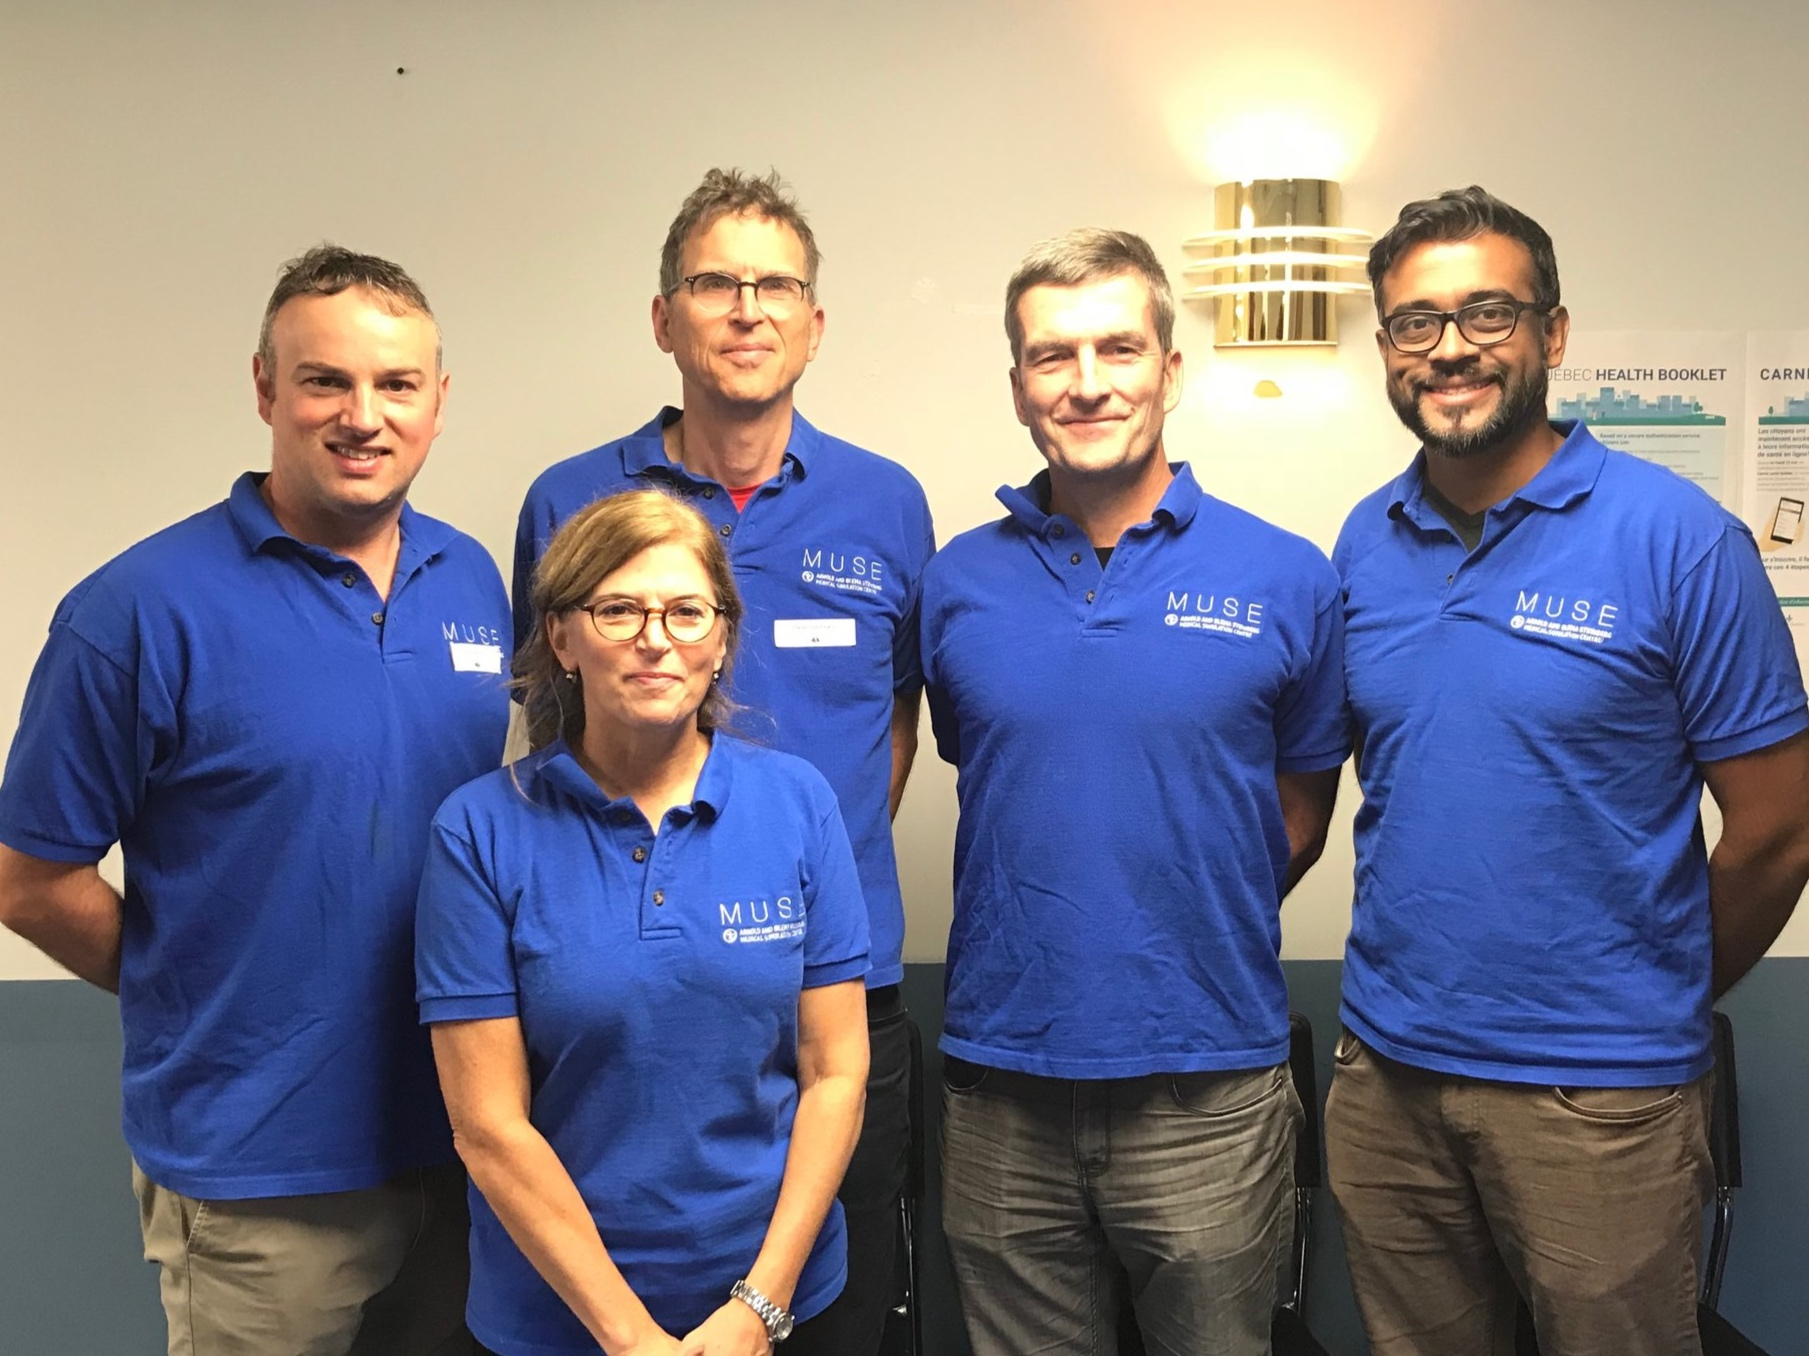 L-R: Nick Burton (Course Manager), Sharon Oleskevich (Executive Administrator), Peter Steinmetz (Co-director), John Lewis (Co-director), Antony Roberts (Lead Instructor)